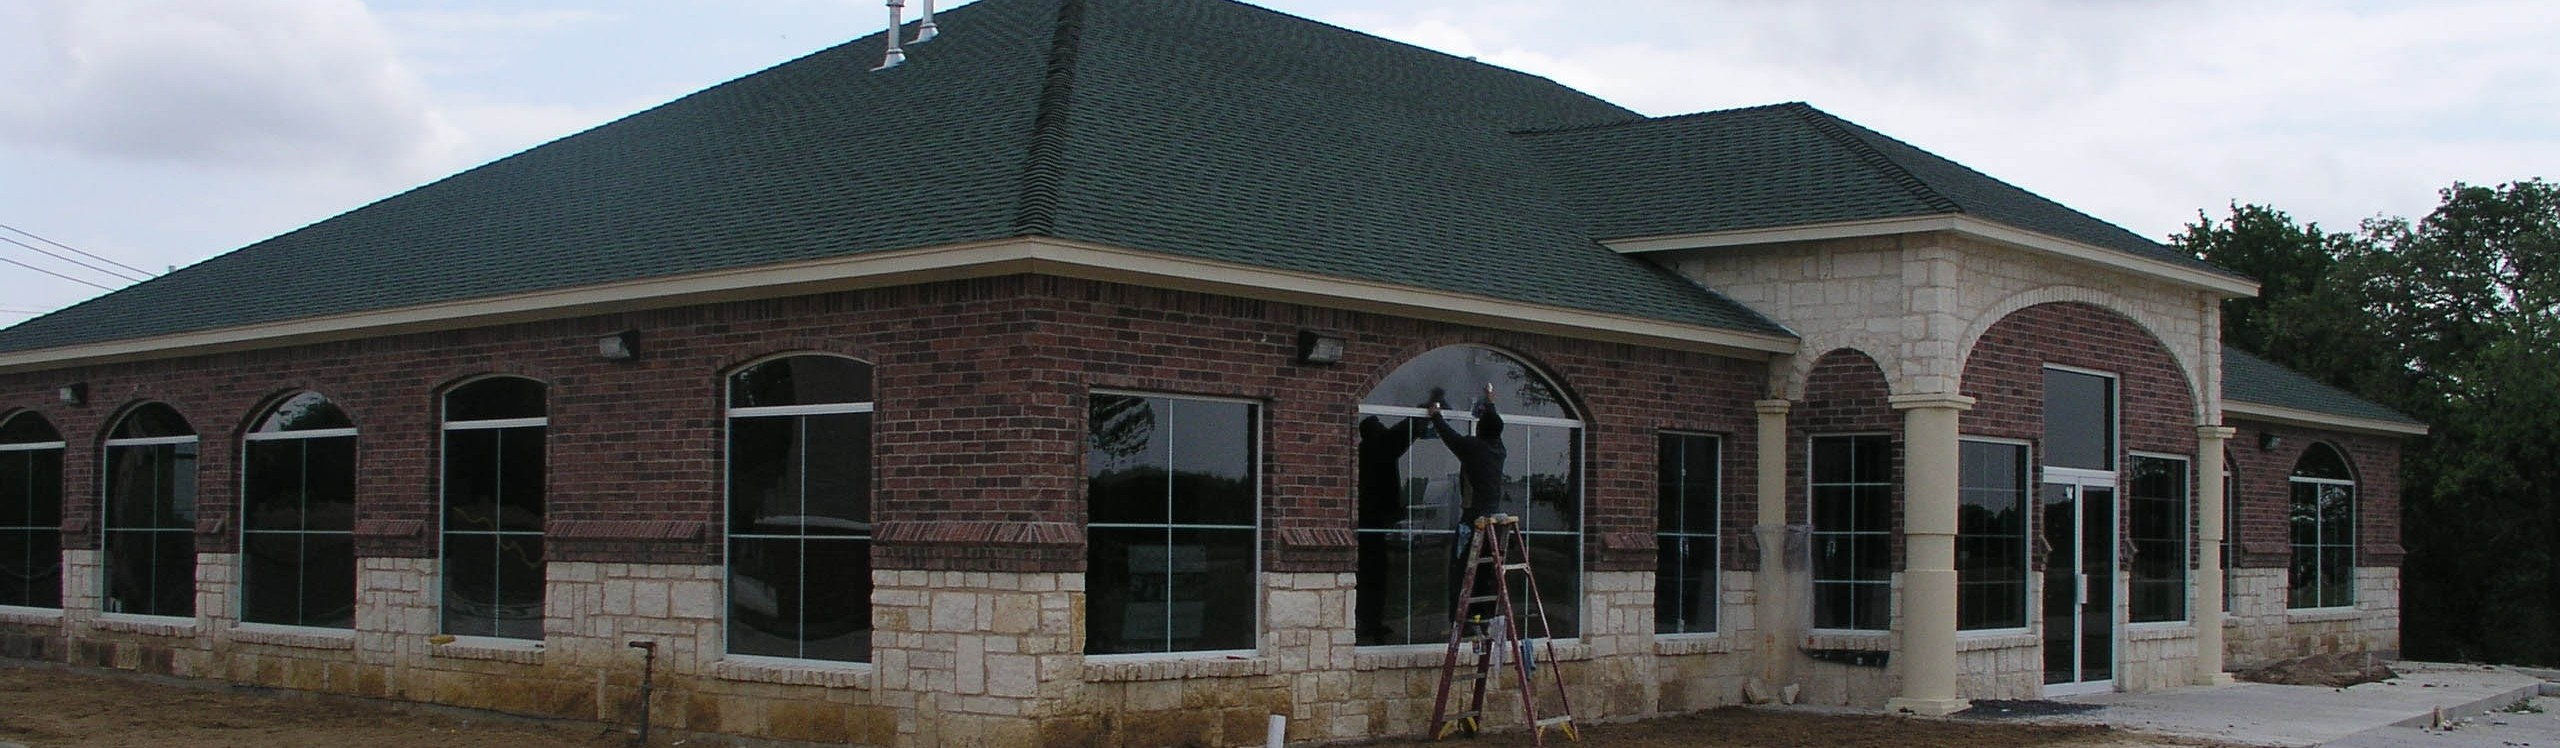 Dr Glen Boyd Doctors Office Construction Exterior Side View